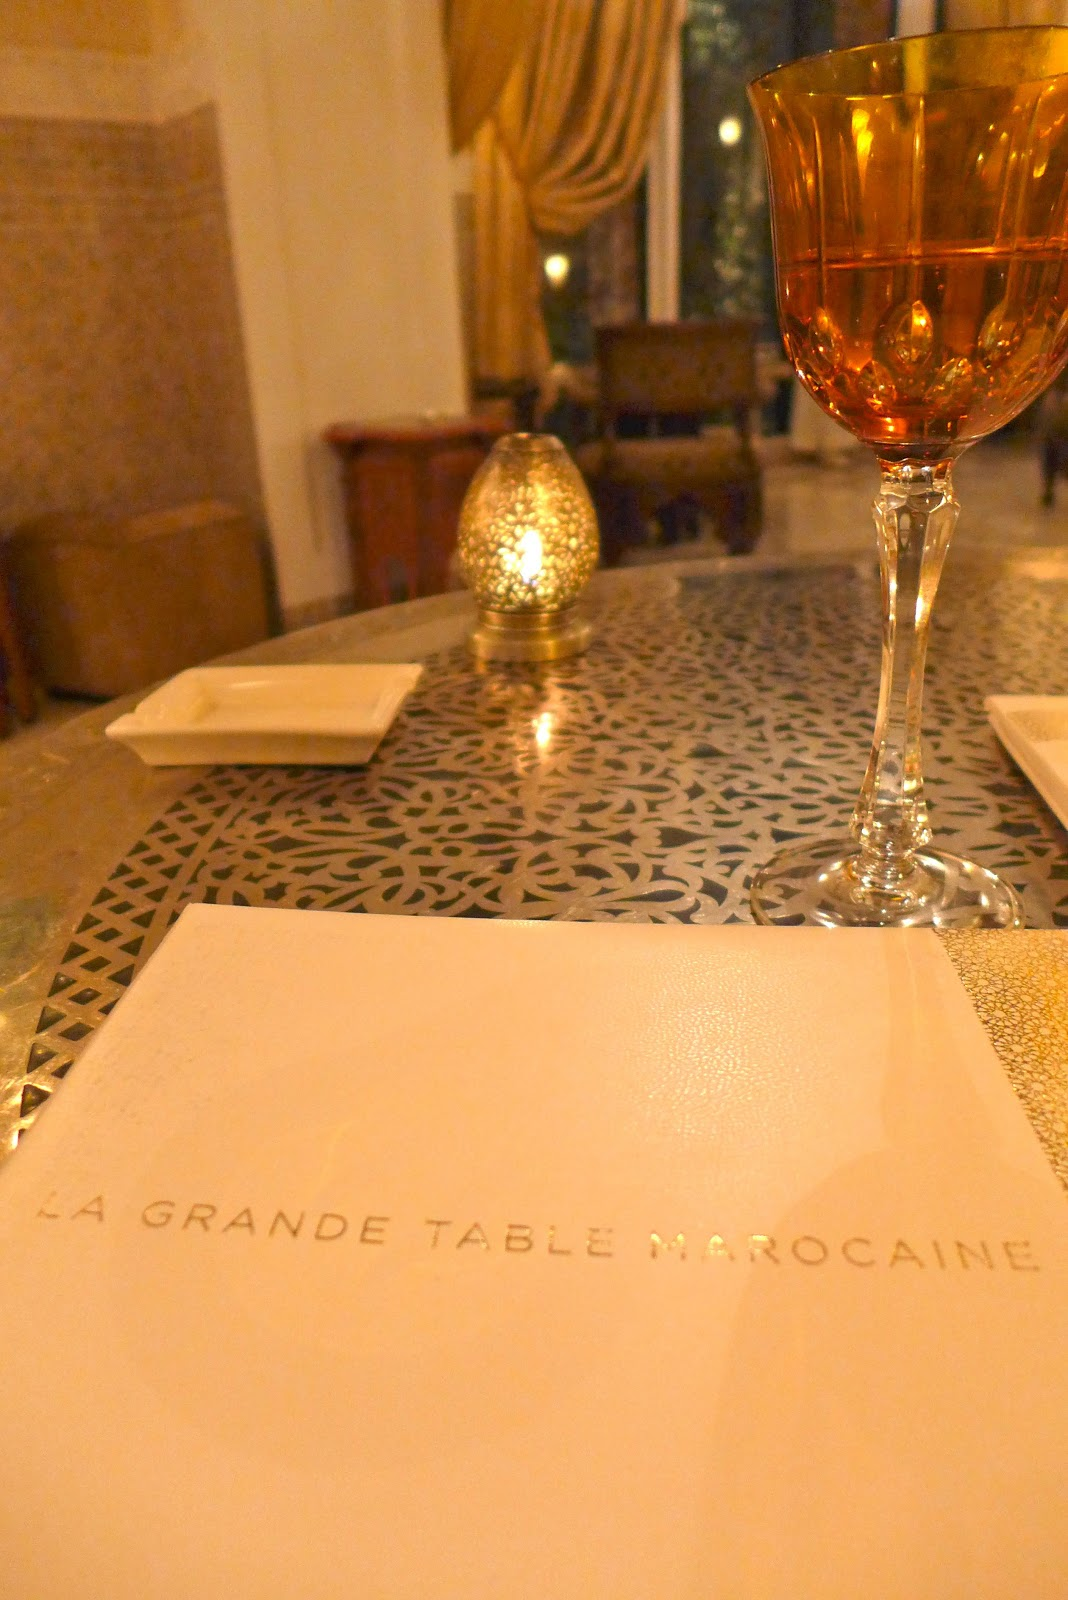 Travel la grande table marocaine restaurant at the royal for Table marocaine